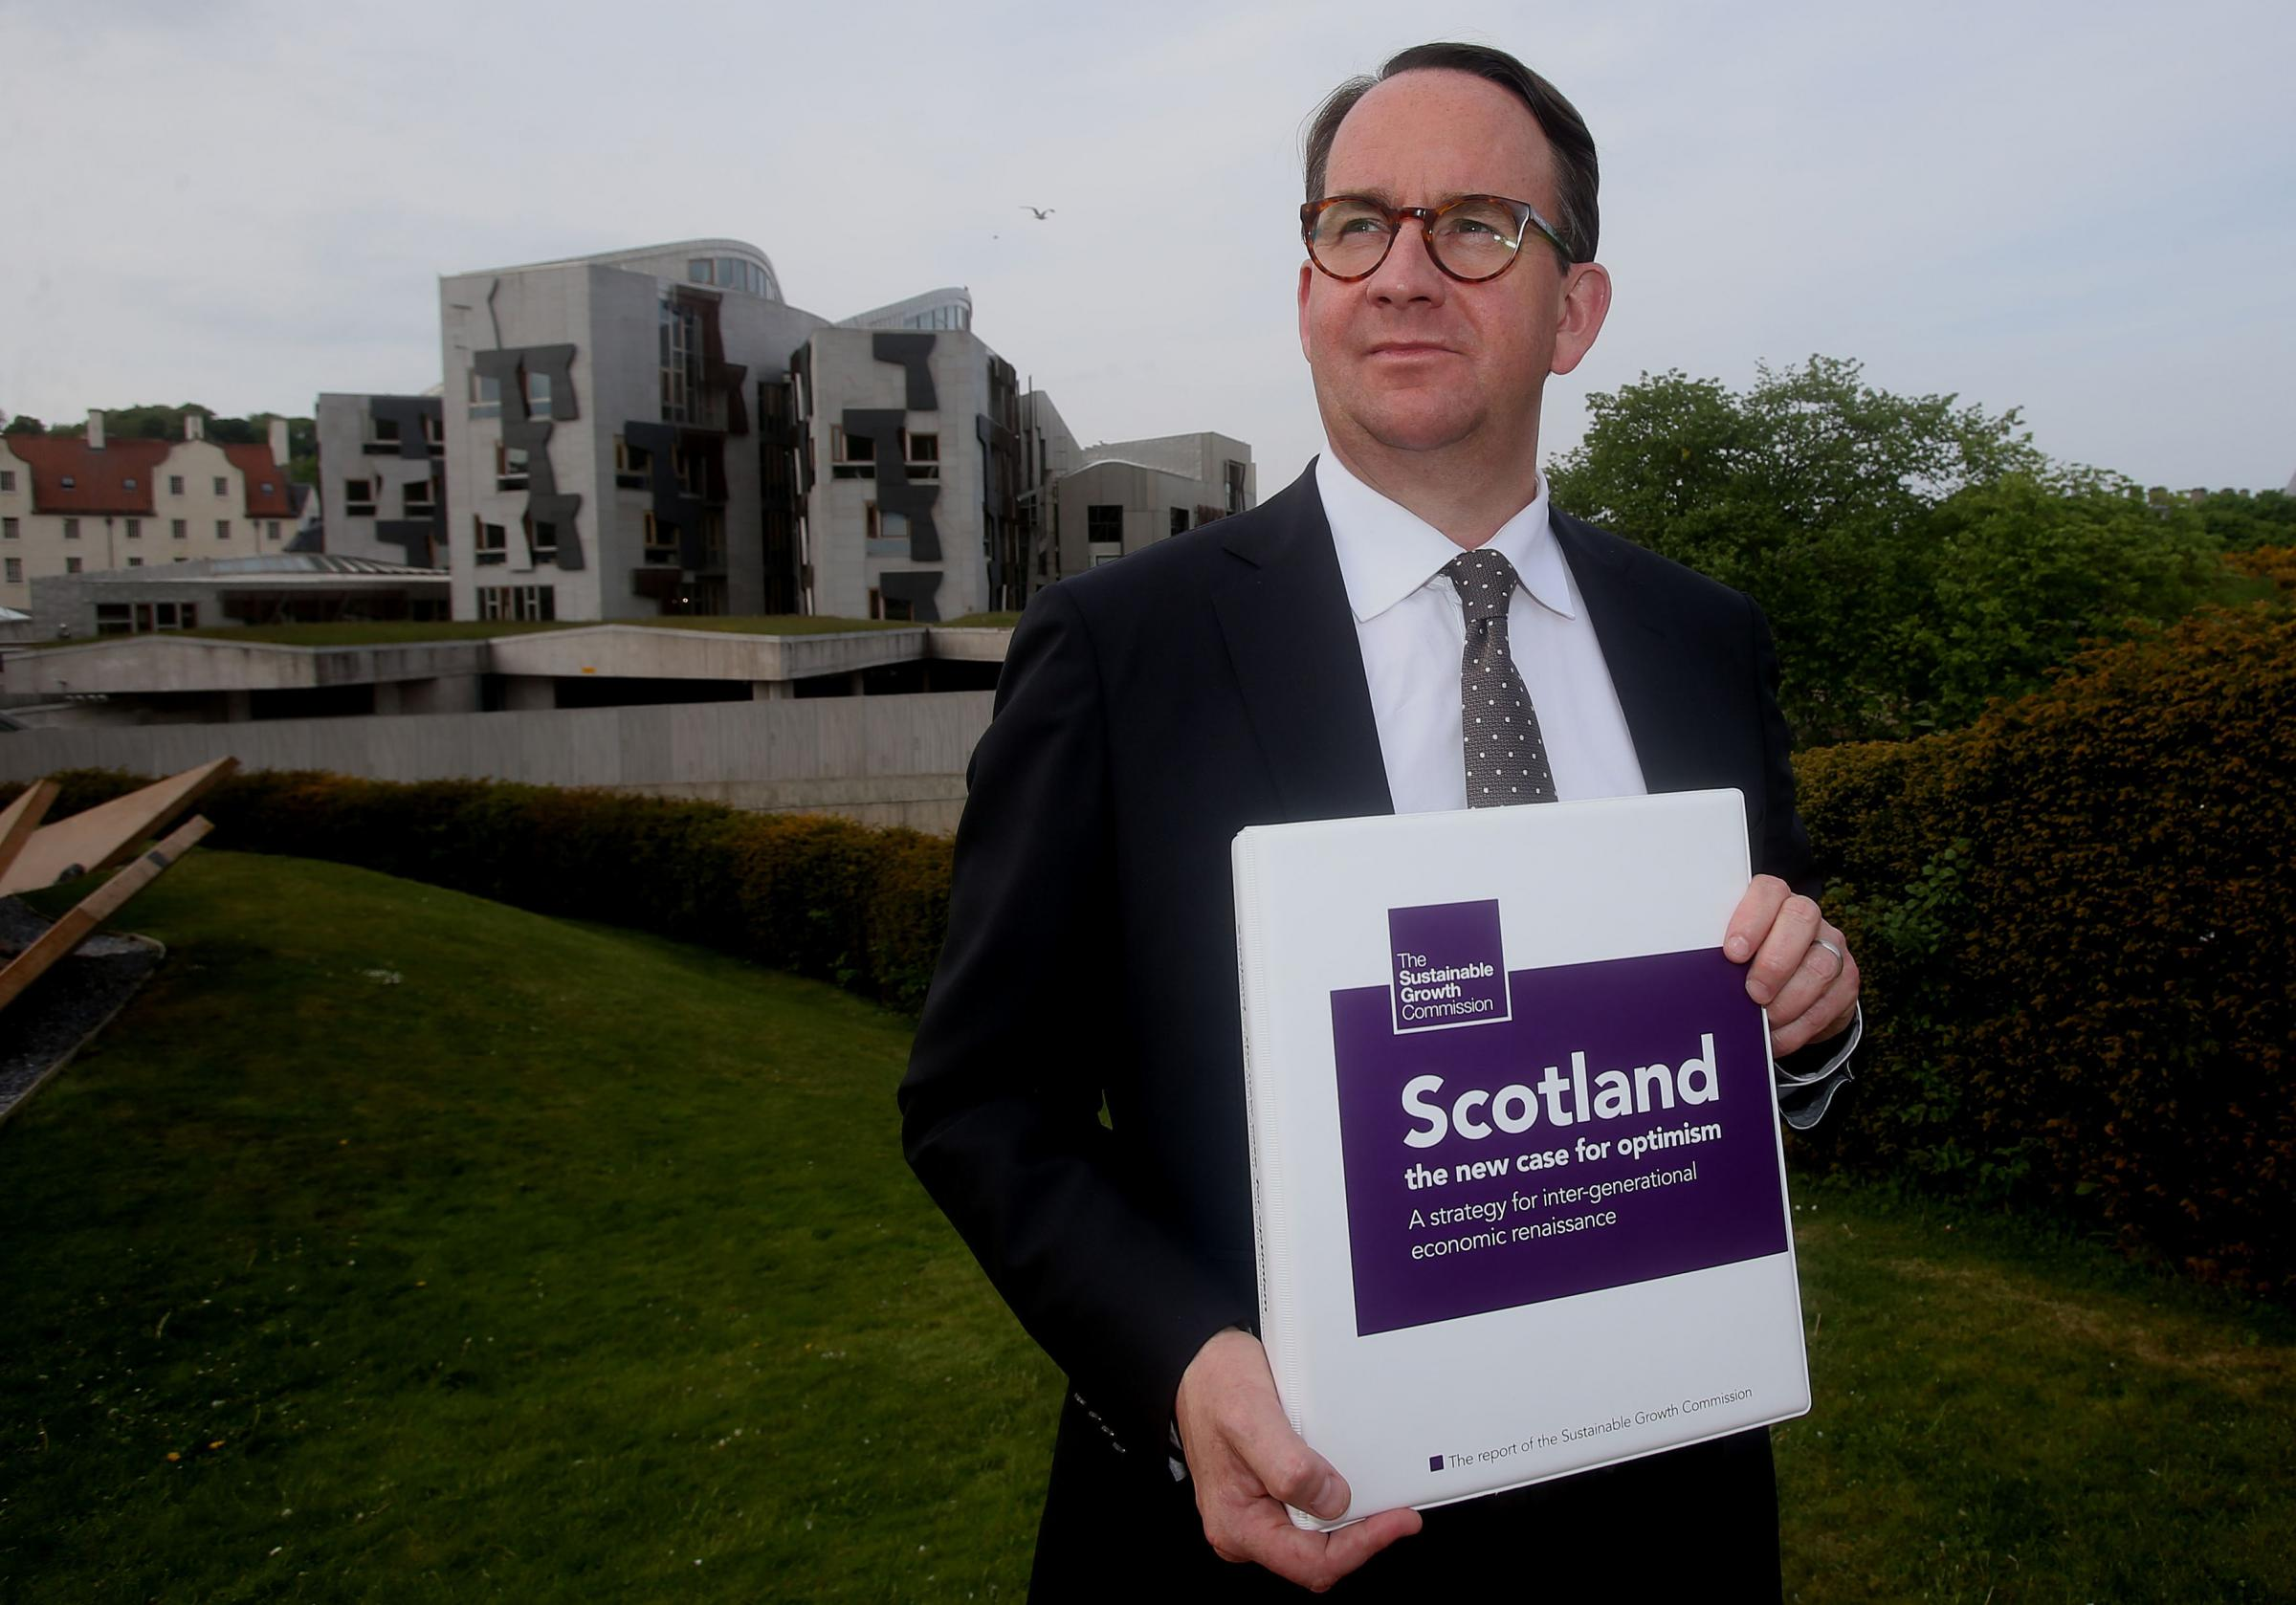 Independence movement must fight corporate interests